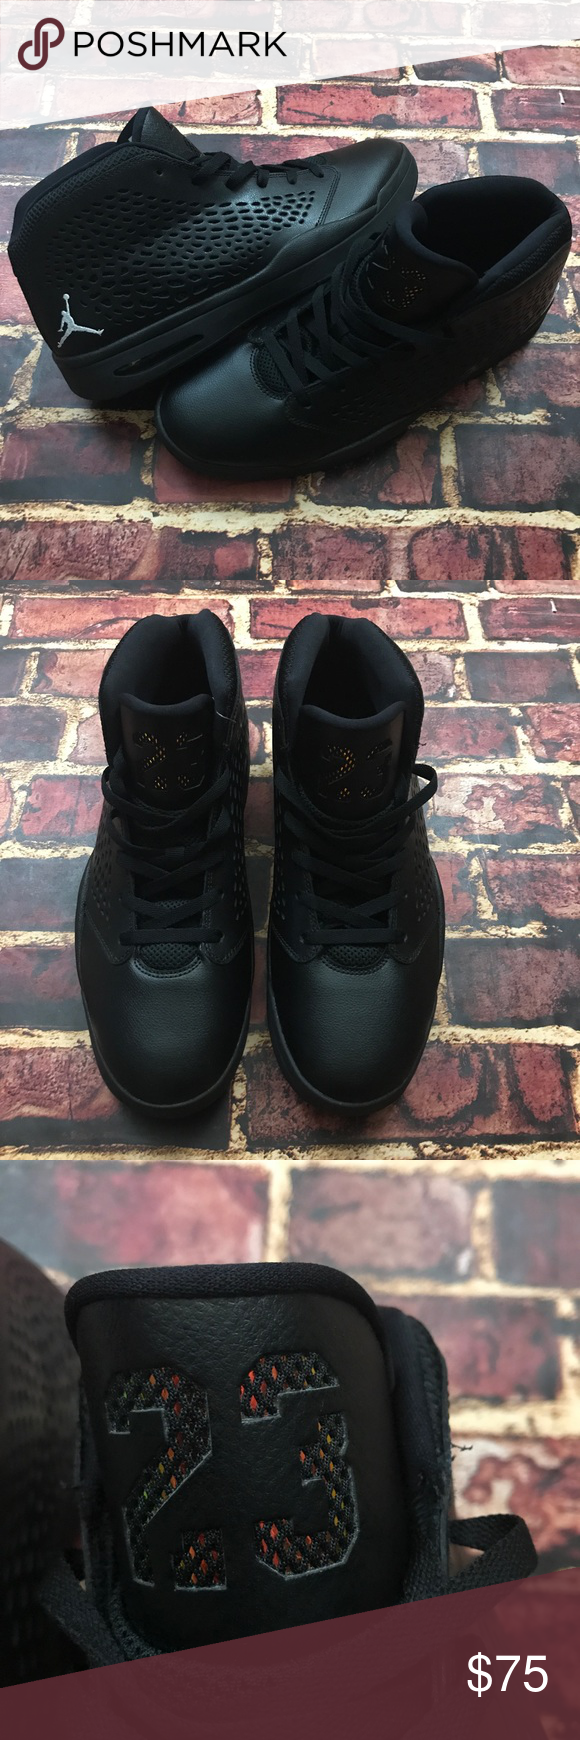 223283983bbf NEW Nike Jordan Flight 23 2015 Men s Size 12 Shoes Brand New without Box.  Excellent Condition   Zero Flaws. See photos for details. Thanks!